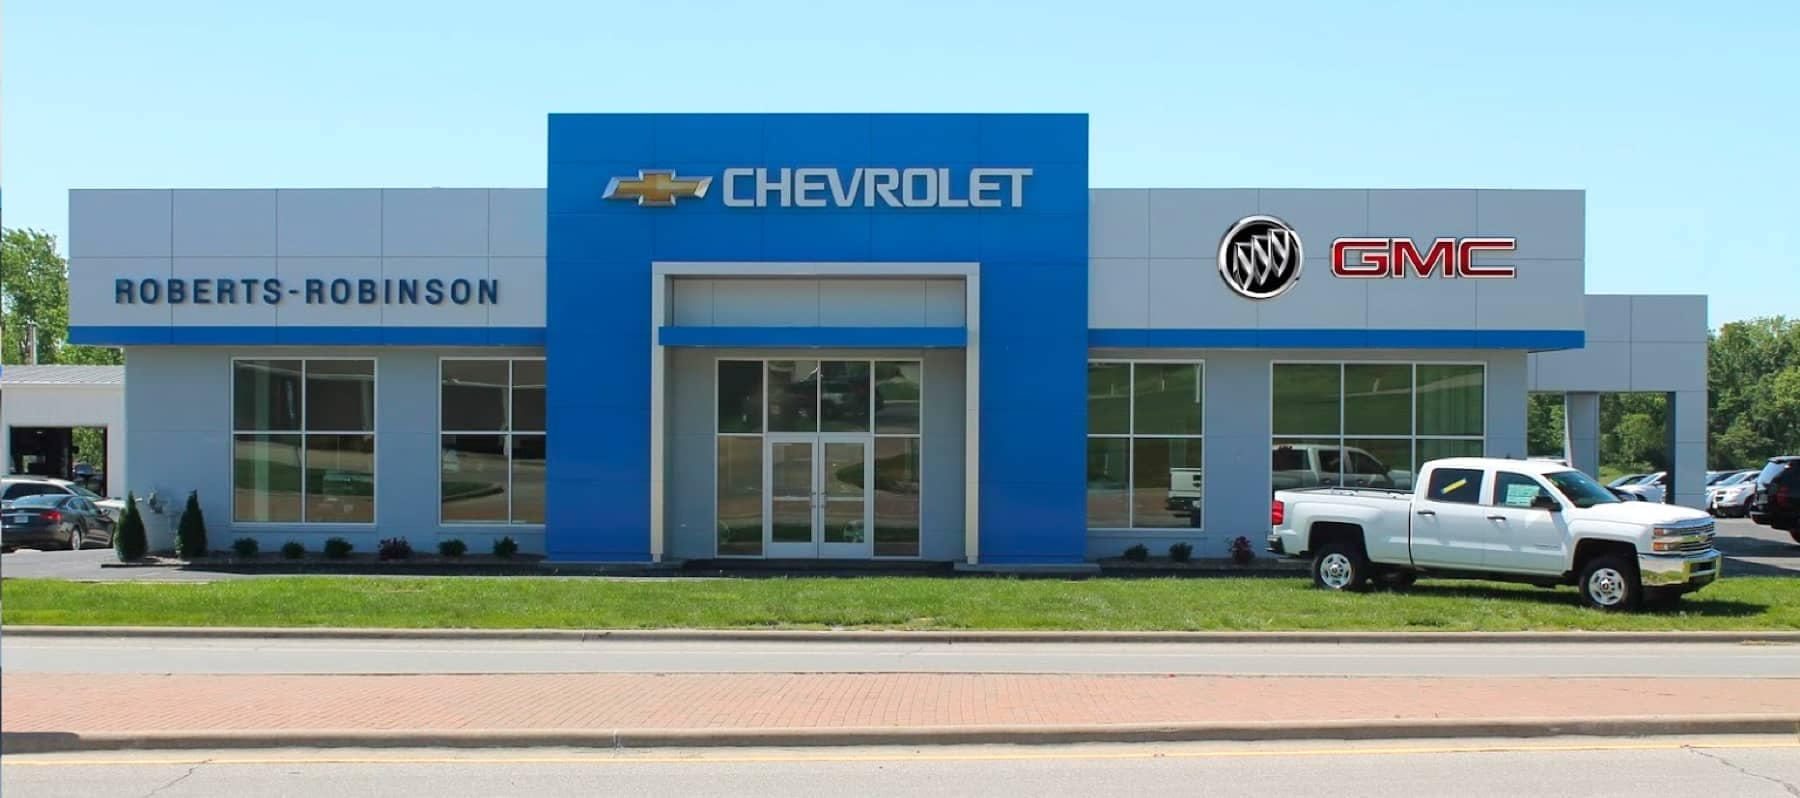 An exterior shot of a Chevrolet dealership